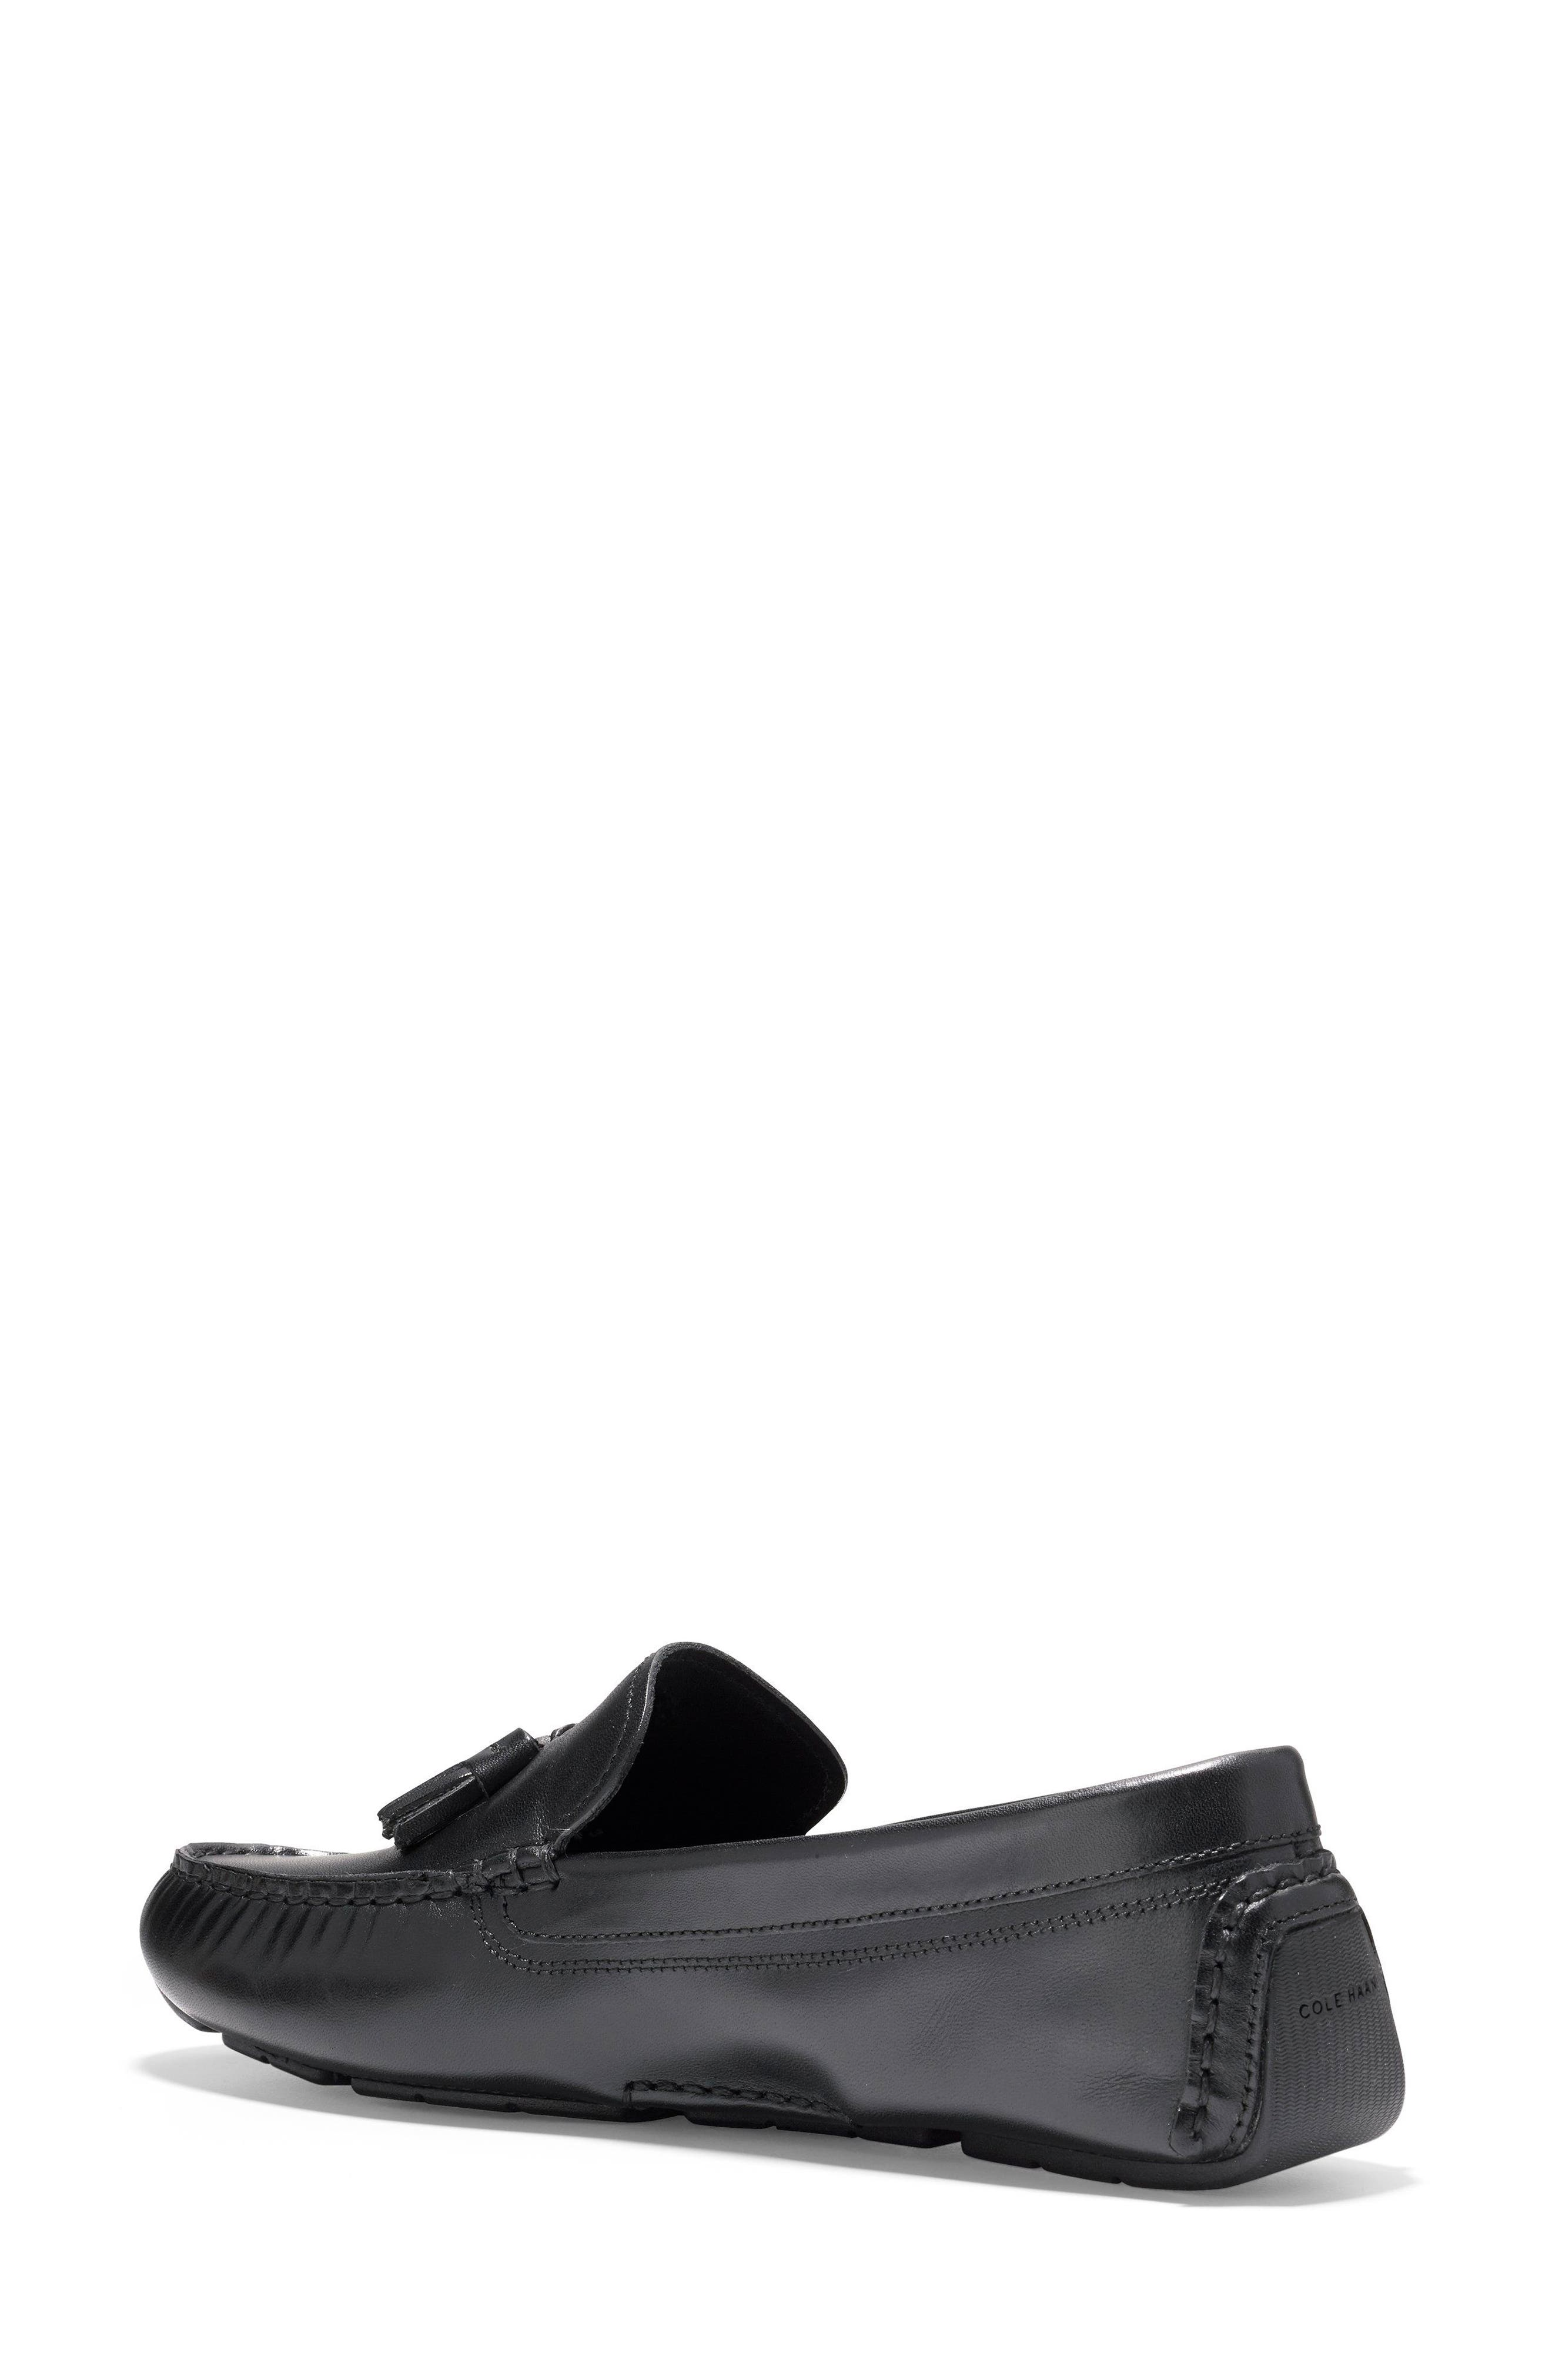 Rodeo Tassel Driving Loafer,                             Alternate thumbnail 2, color,                             001